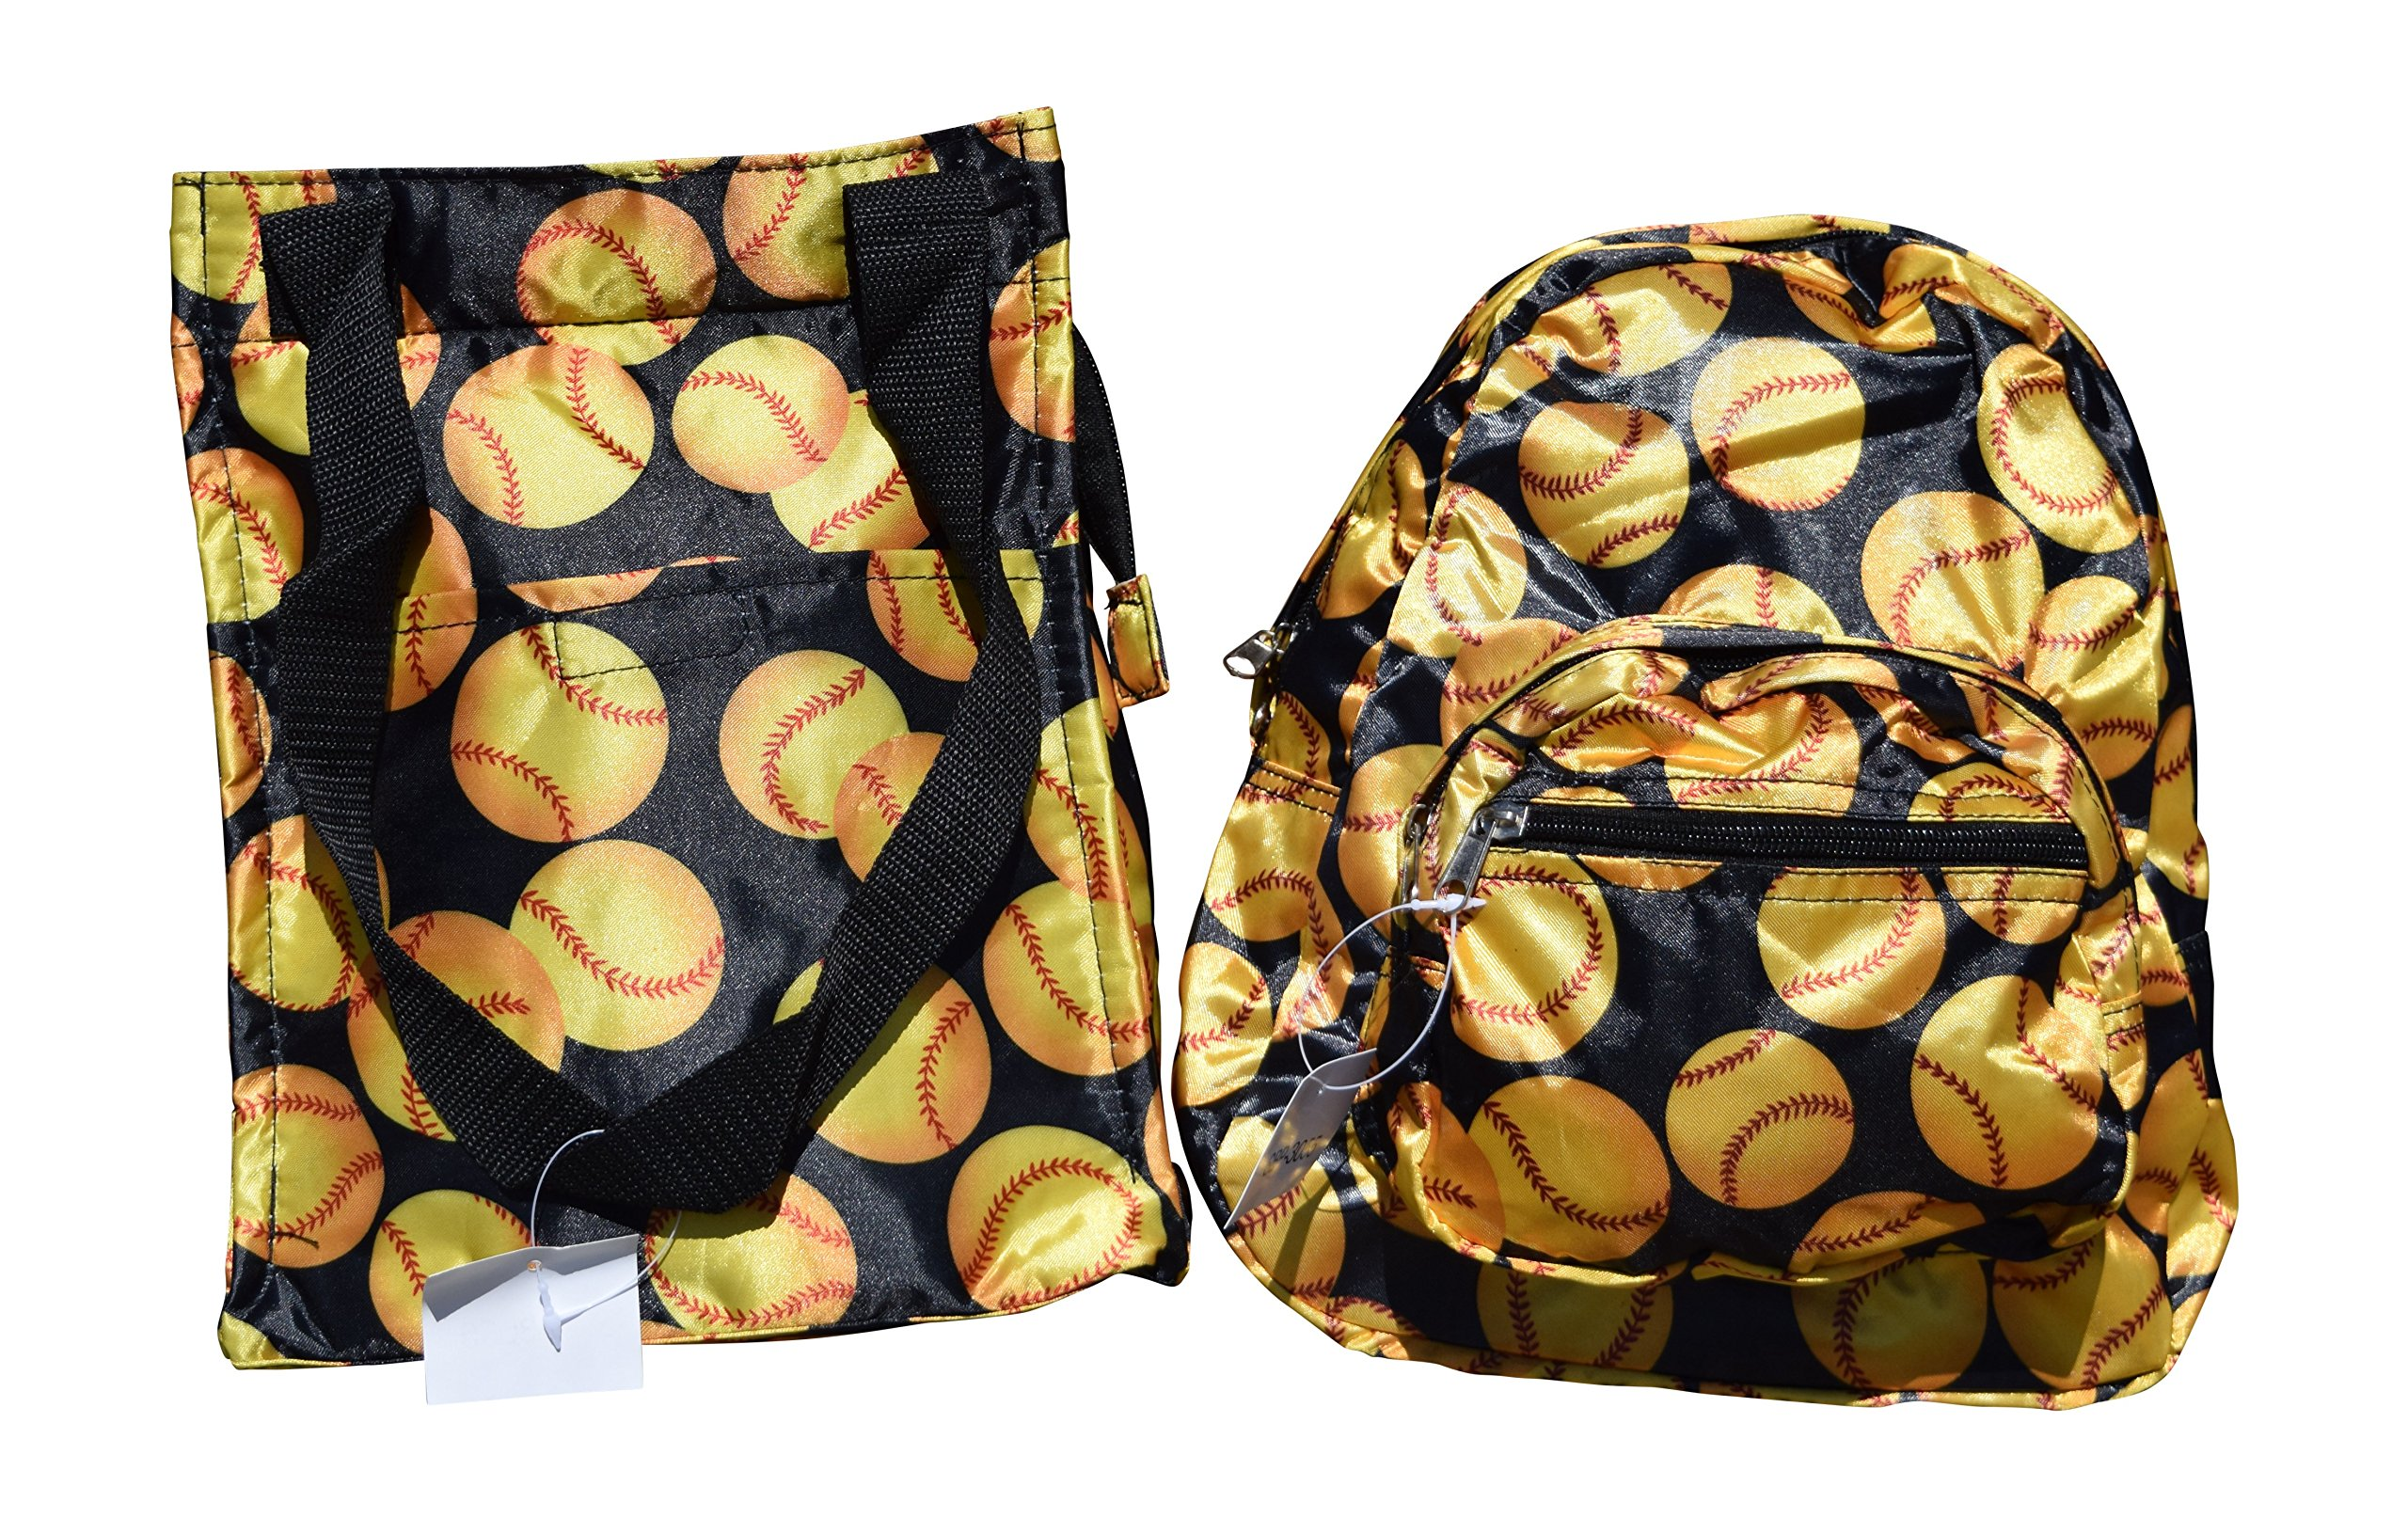 Small Size Backpack For Child and Matching Insulated Lunch Bag (Yellow Baseball)